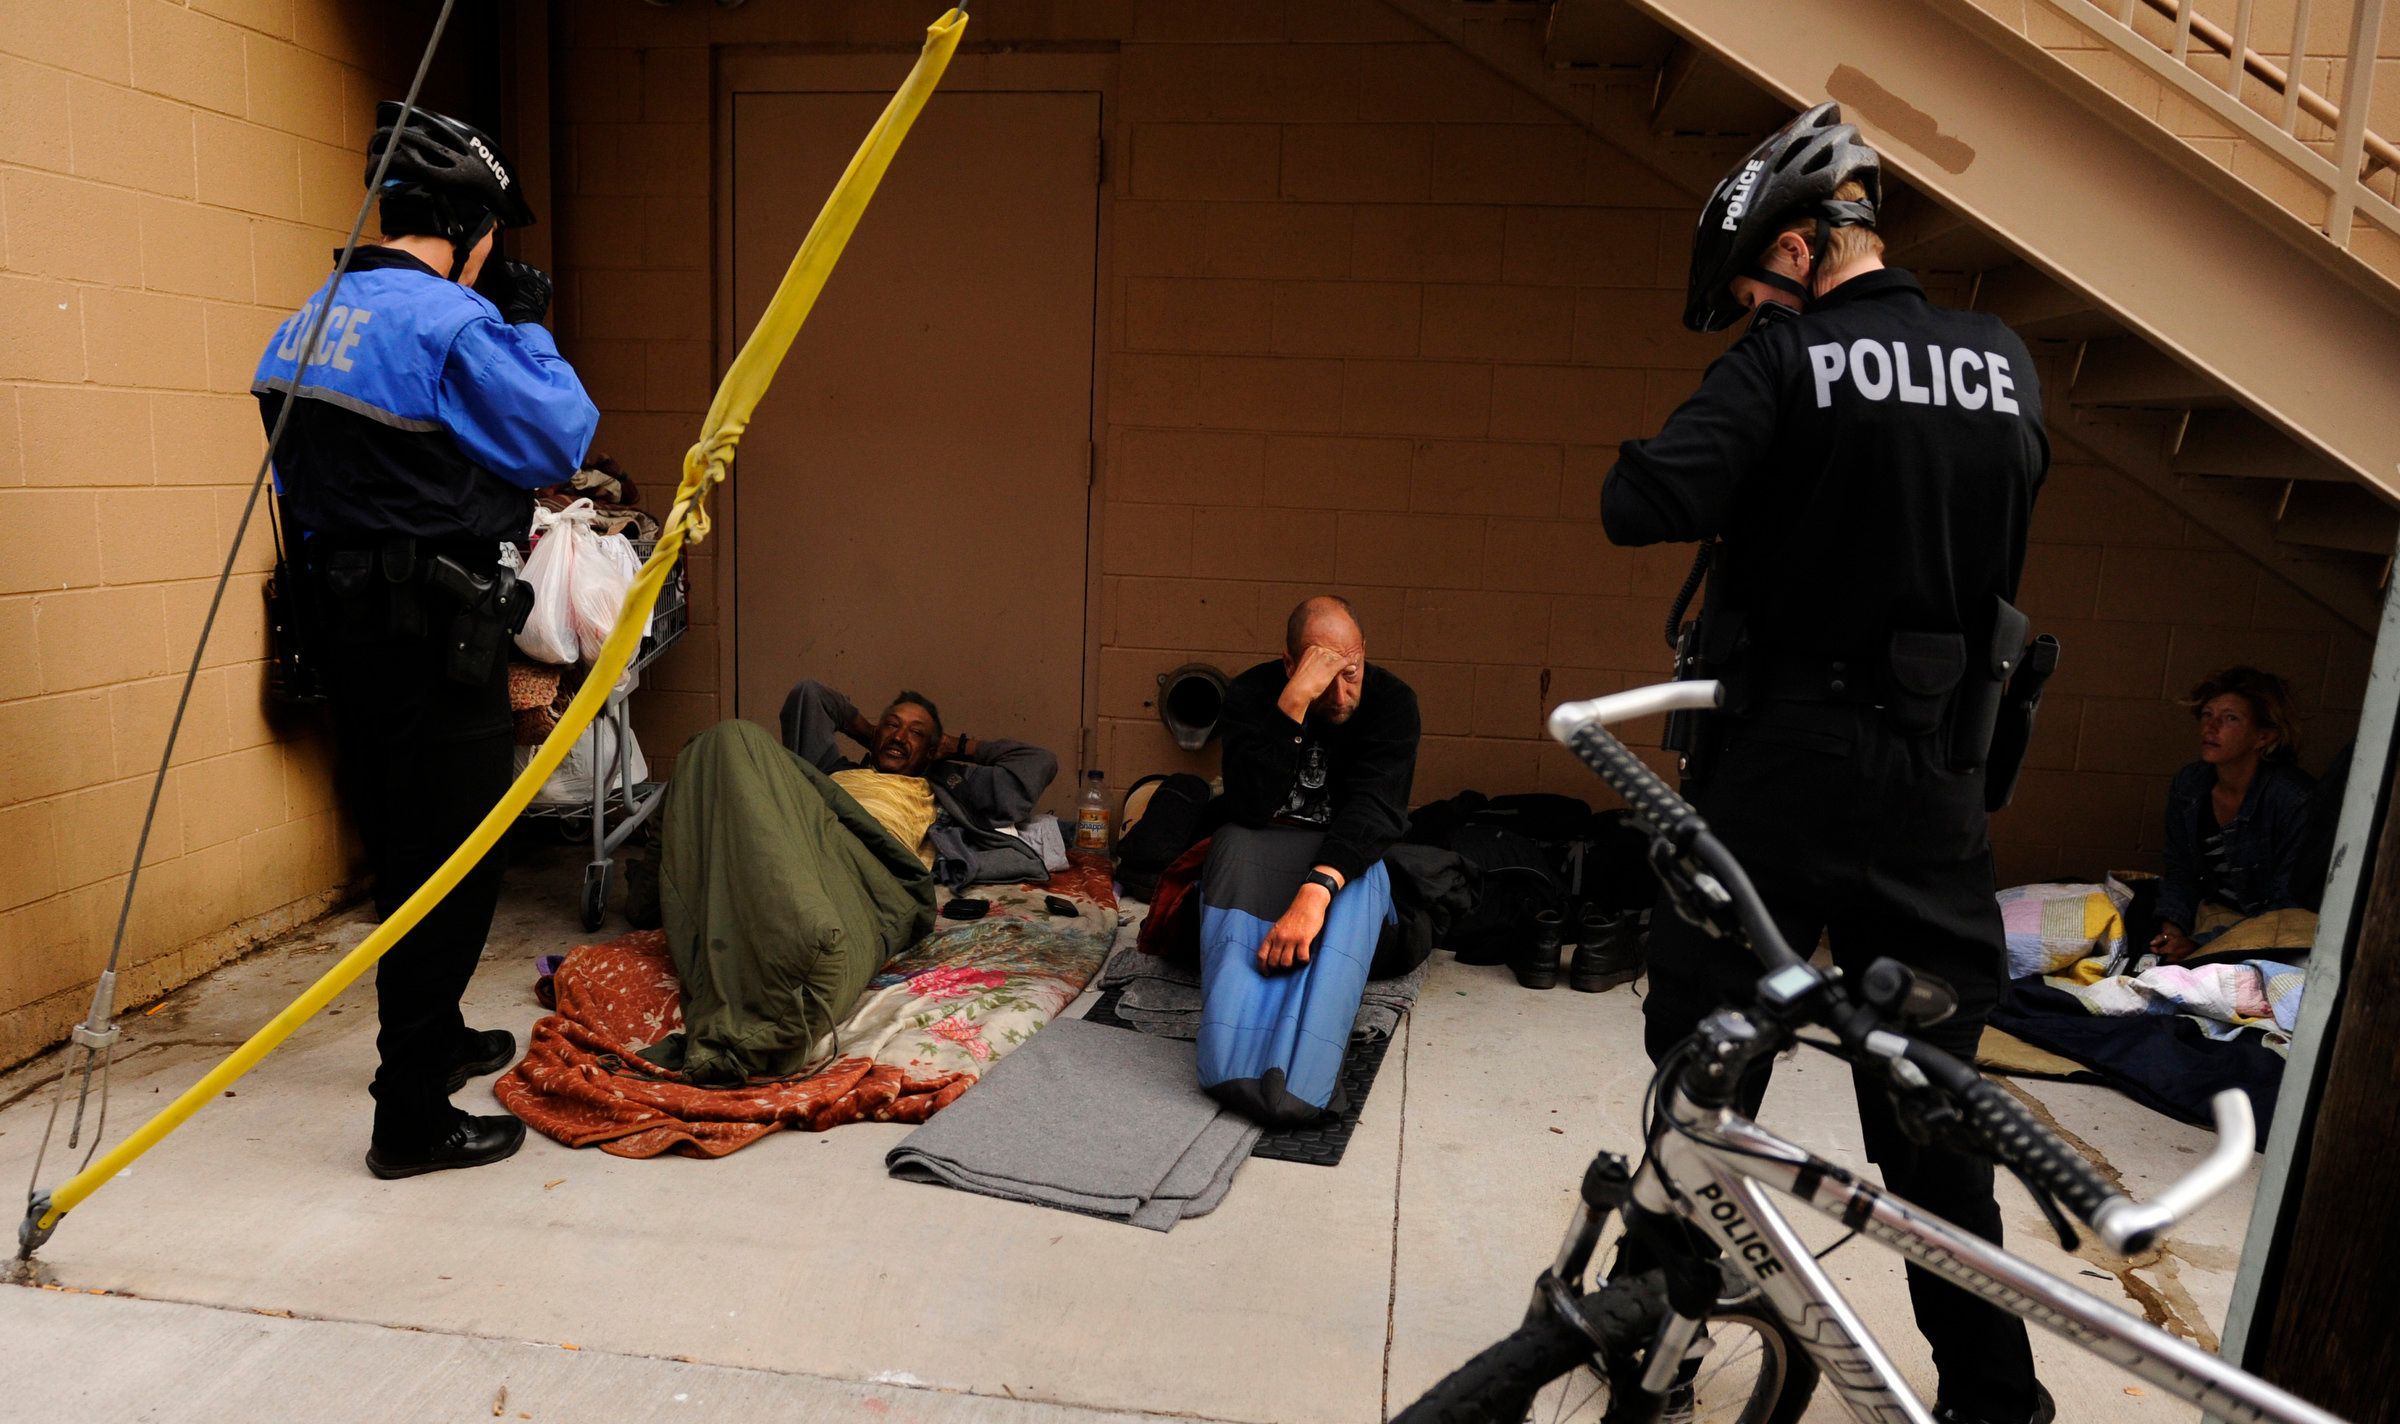 Denver Police Officers Layla DeStaffany, left, and Stephanie Meadows talk to a group of homeless sleeping, Wednesday, April 25, 2012, in an alley behind Central Baptist Church in Denver. The two officers, that are part of Denver Police Department's Homeless Outreach unit, asked them to move from the area. RJ Sangosti, The Denver Post  (Photo By RJ Sangosti/The Denver Post via Getty Images)